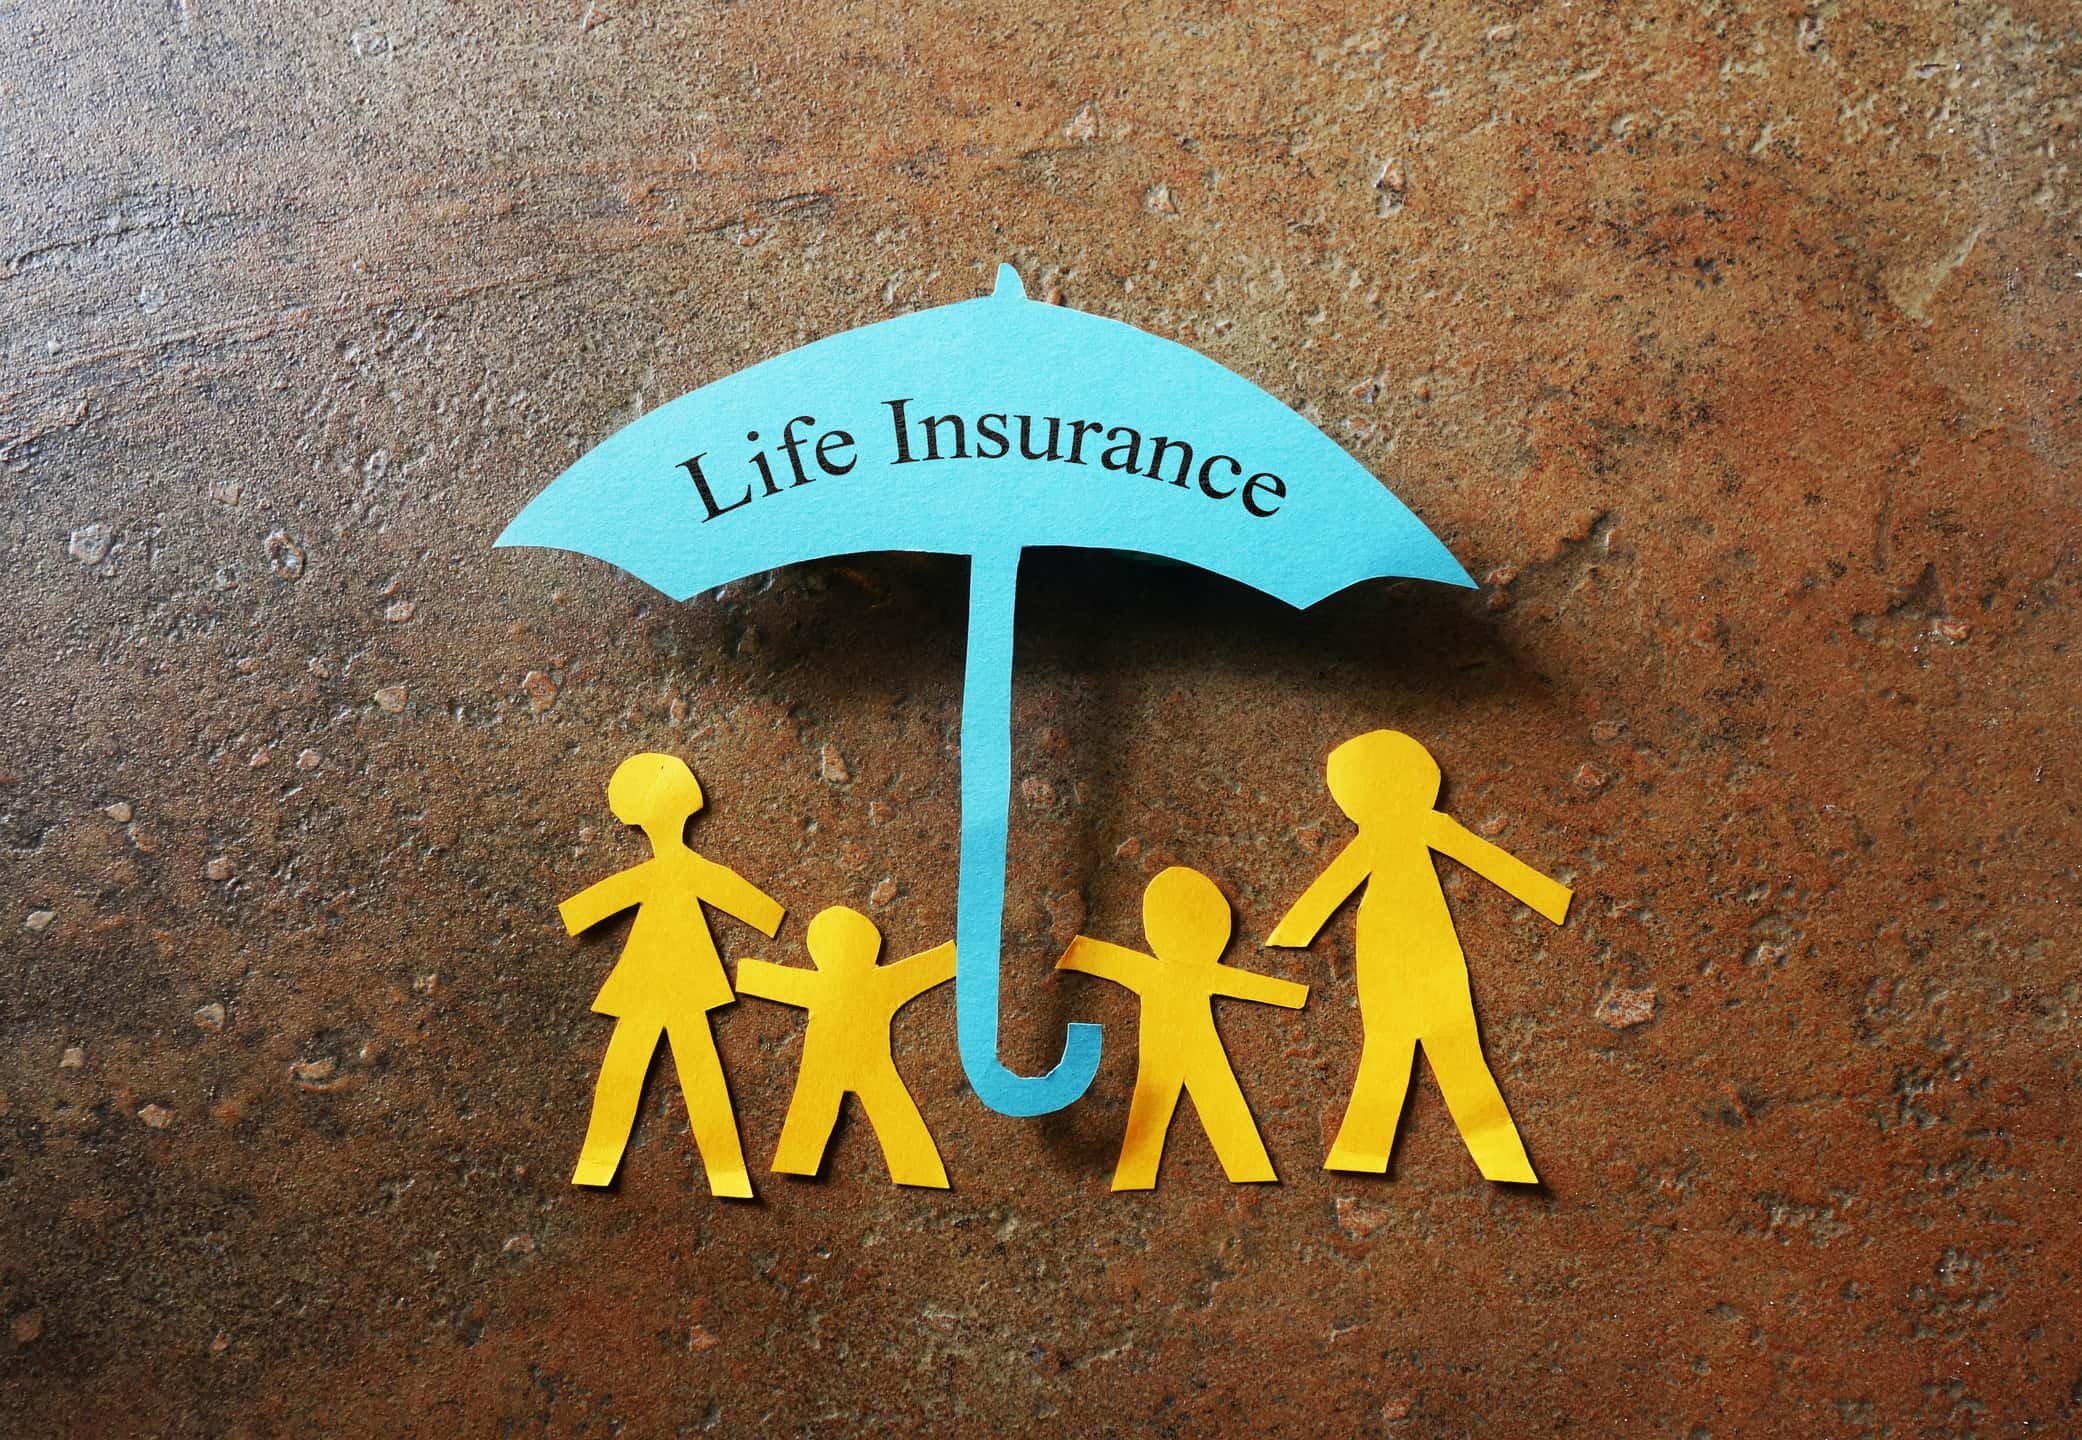 Four yellow paper figures standing under a blue paper umbrella symbolizing life insurance